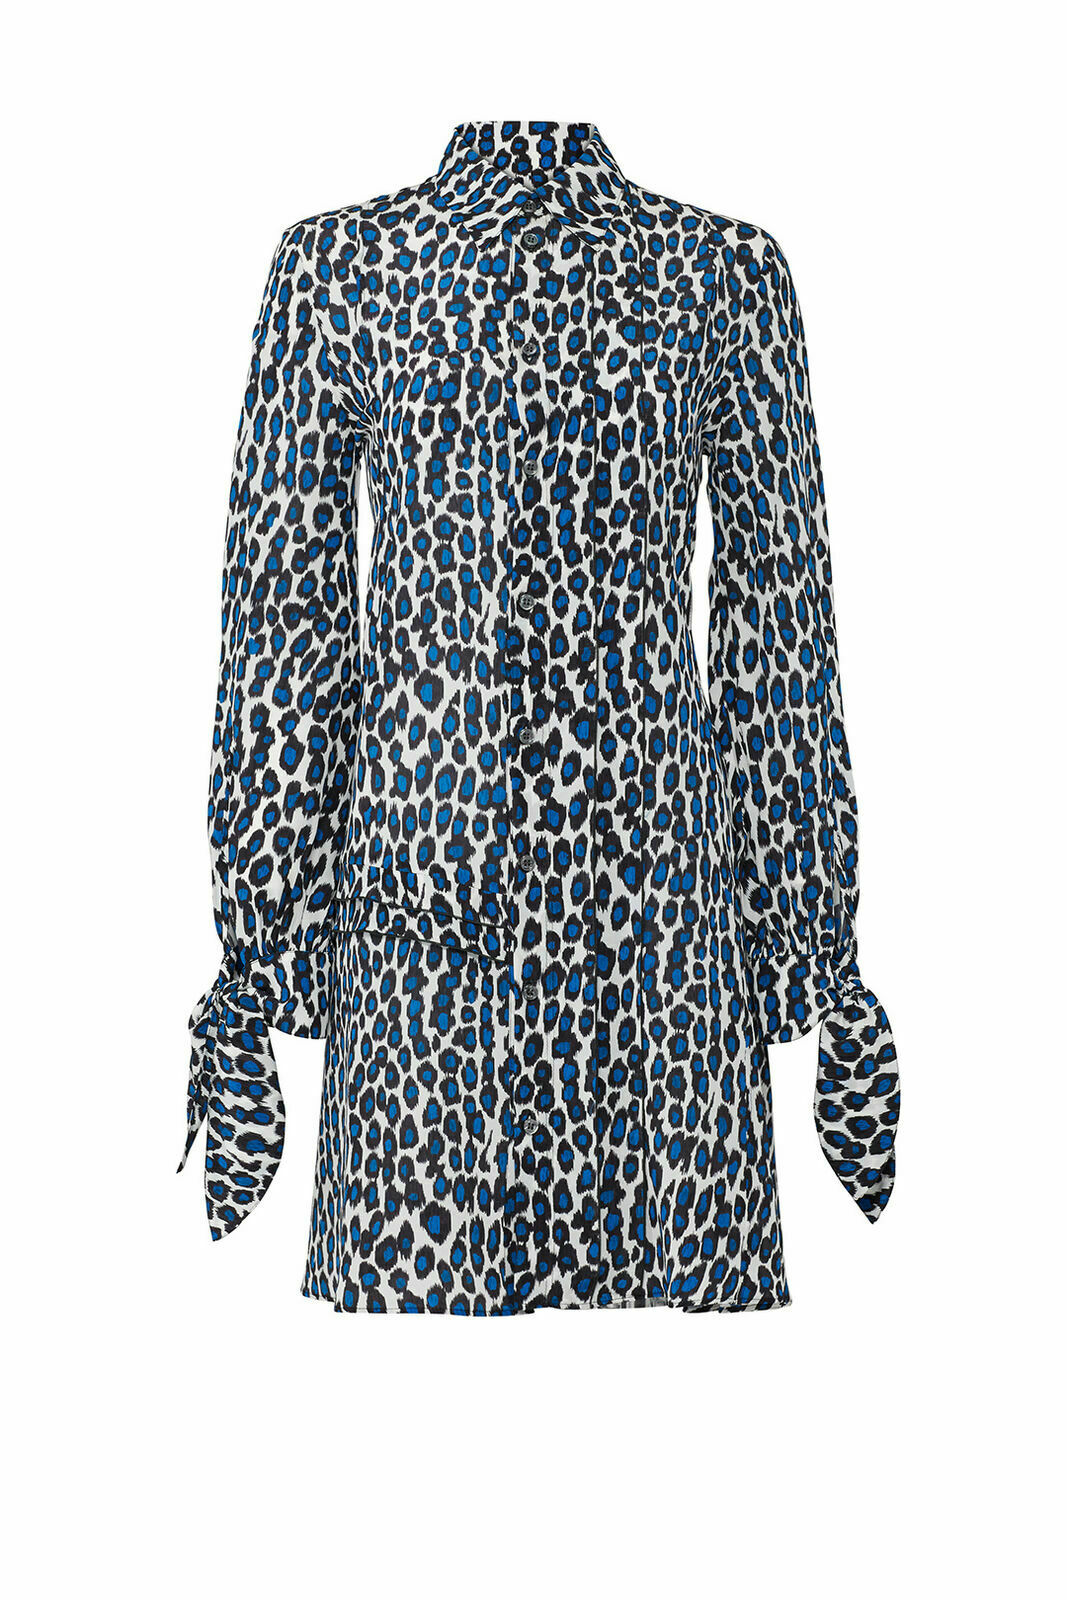 Derek Lam  1,450 New Silk Silk Silk Print Pleated bluee Long Sleeve Shirtdress (2 36, 4 38) a3b02a